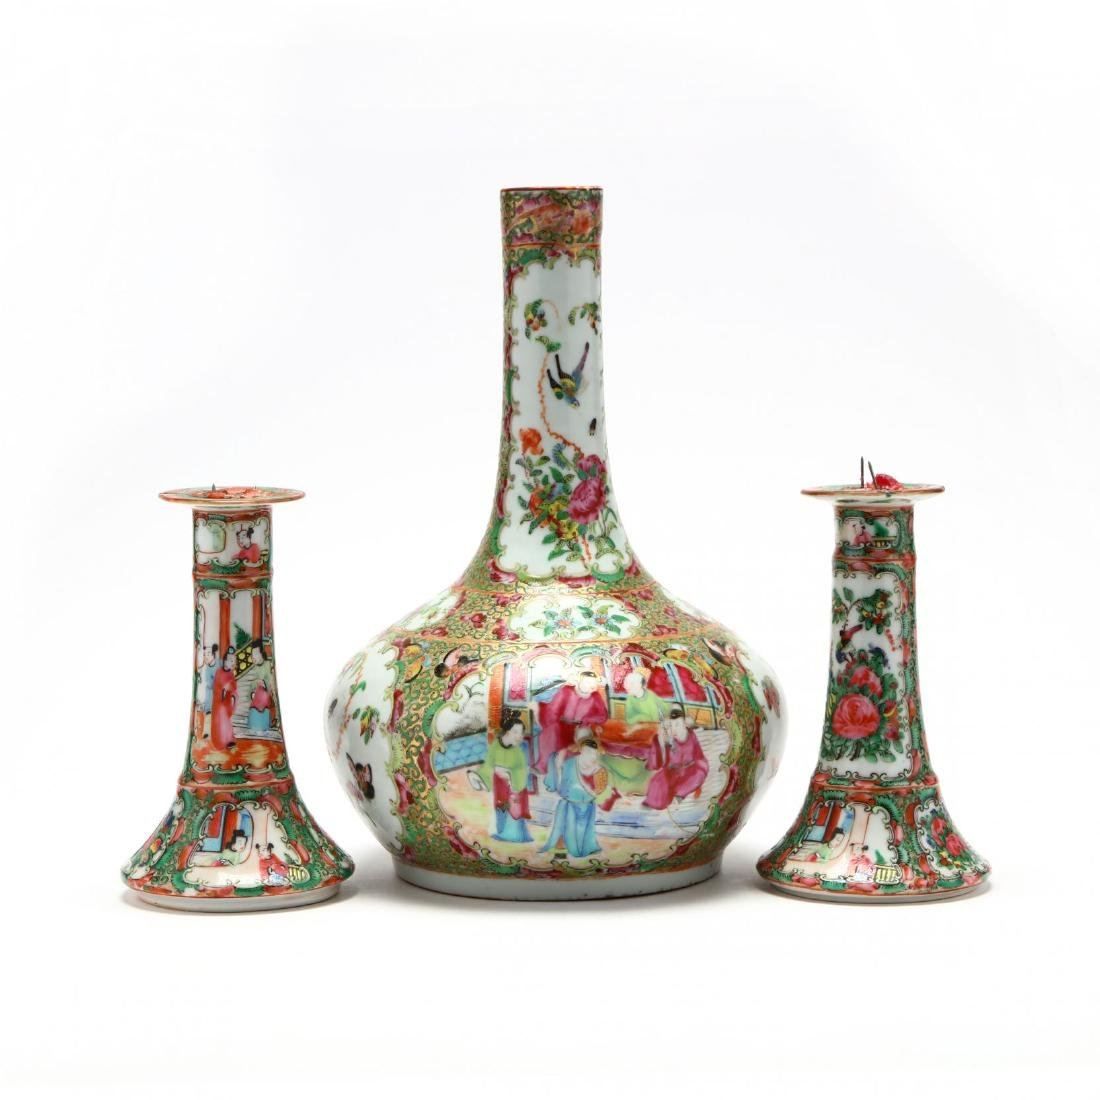 A Chinese Famille Rose Pair of Candle Sticks and Bottle